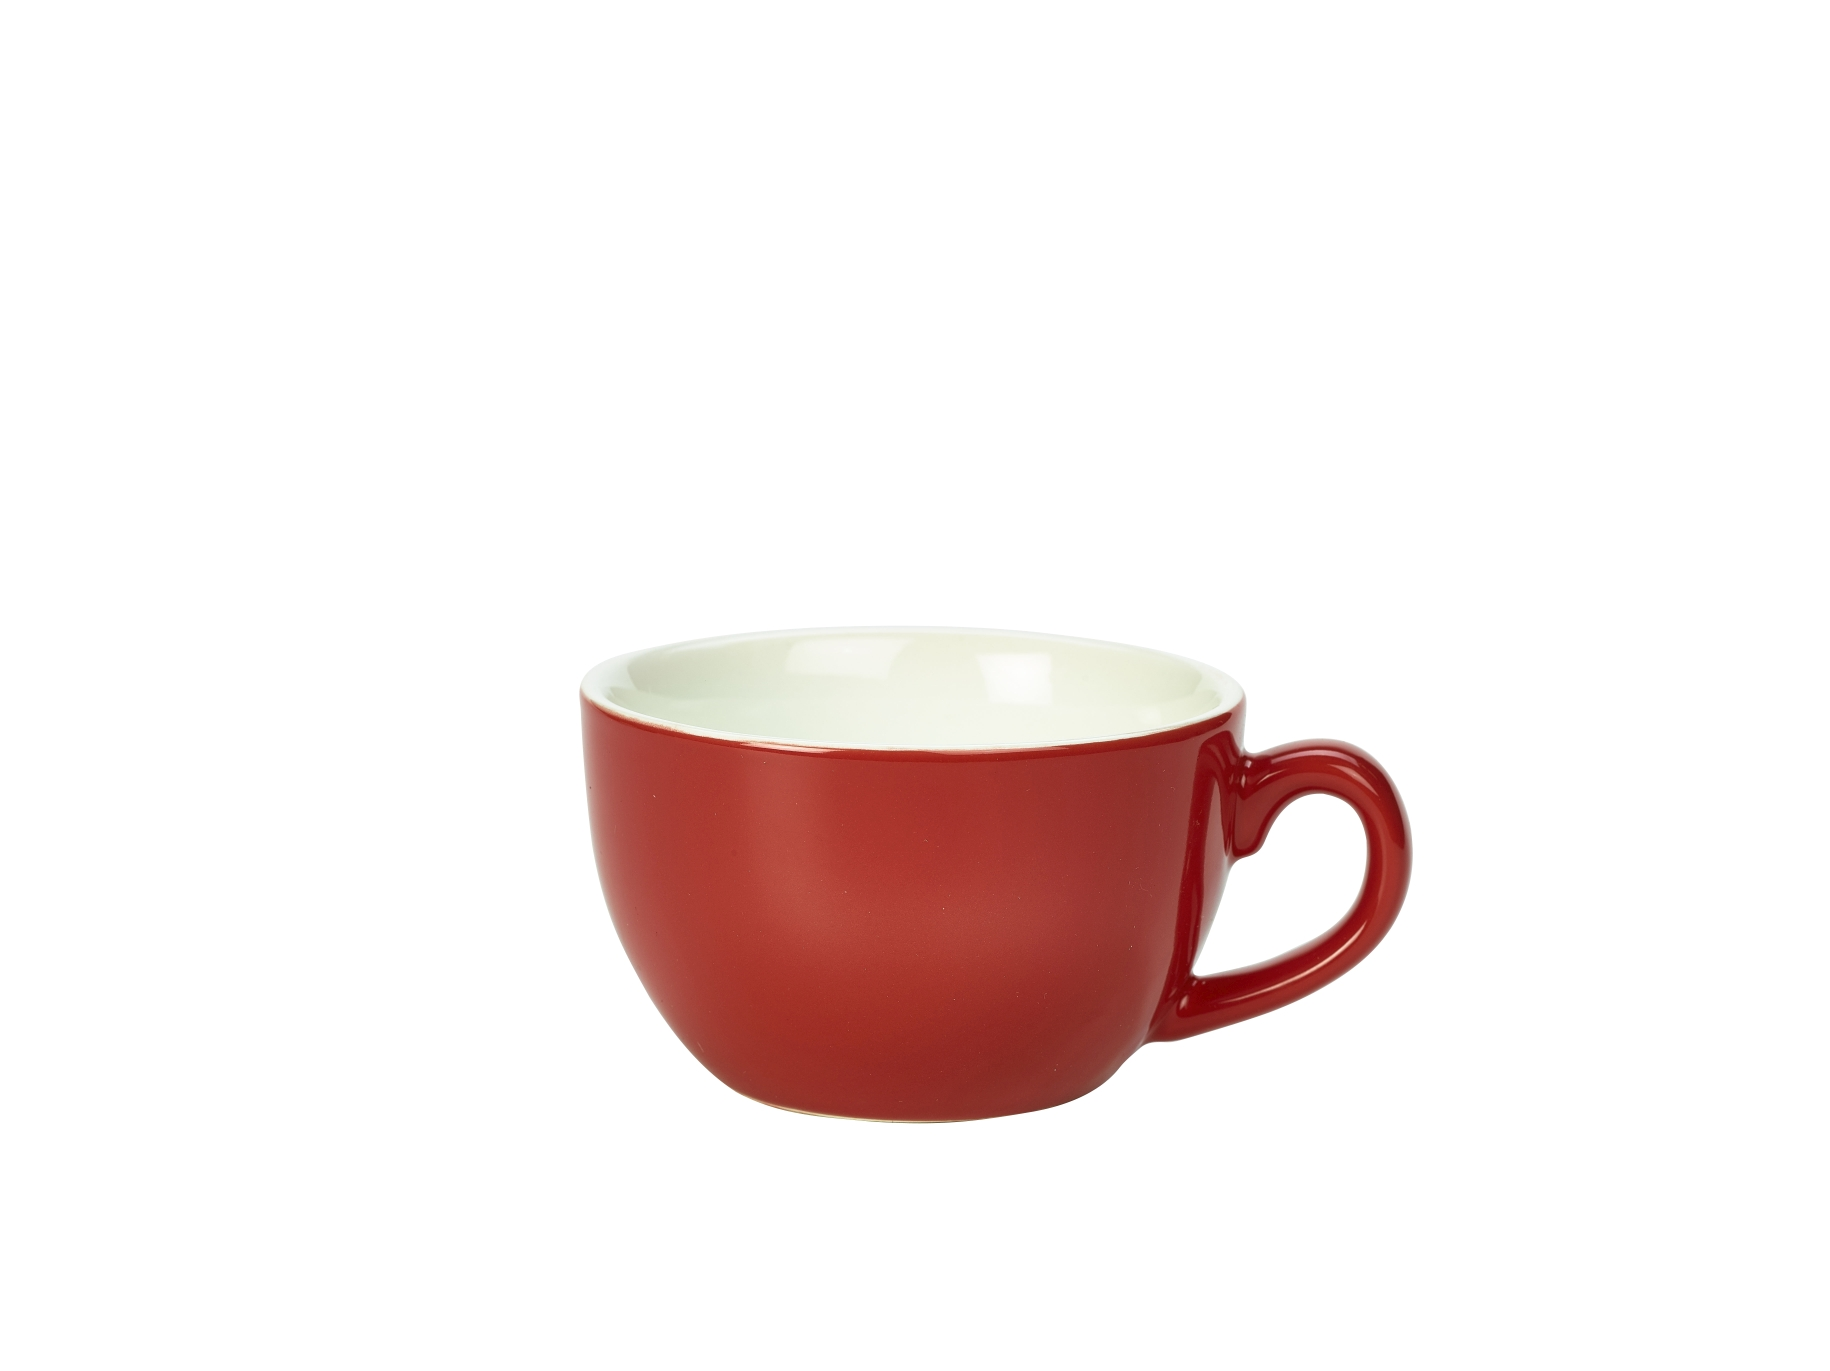 Genware Porcelain Bowl Shaped Cup 25cl Red